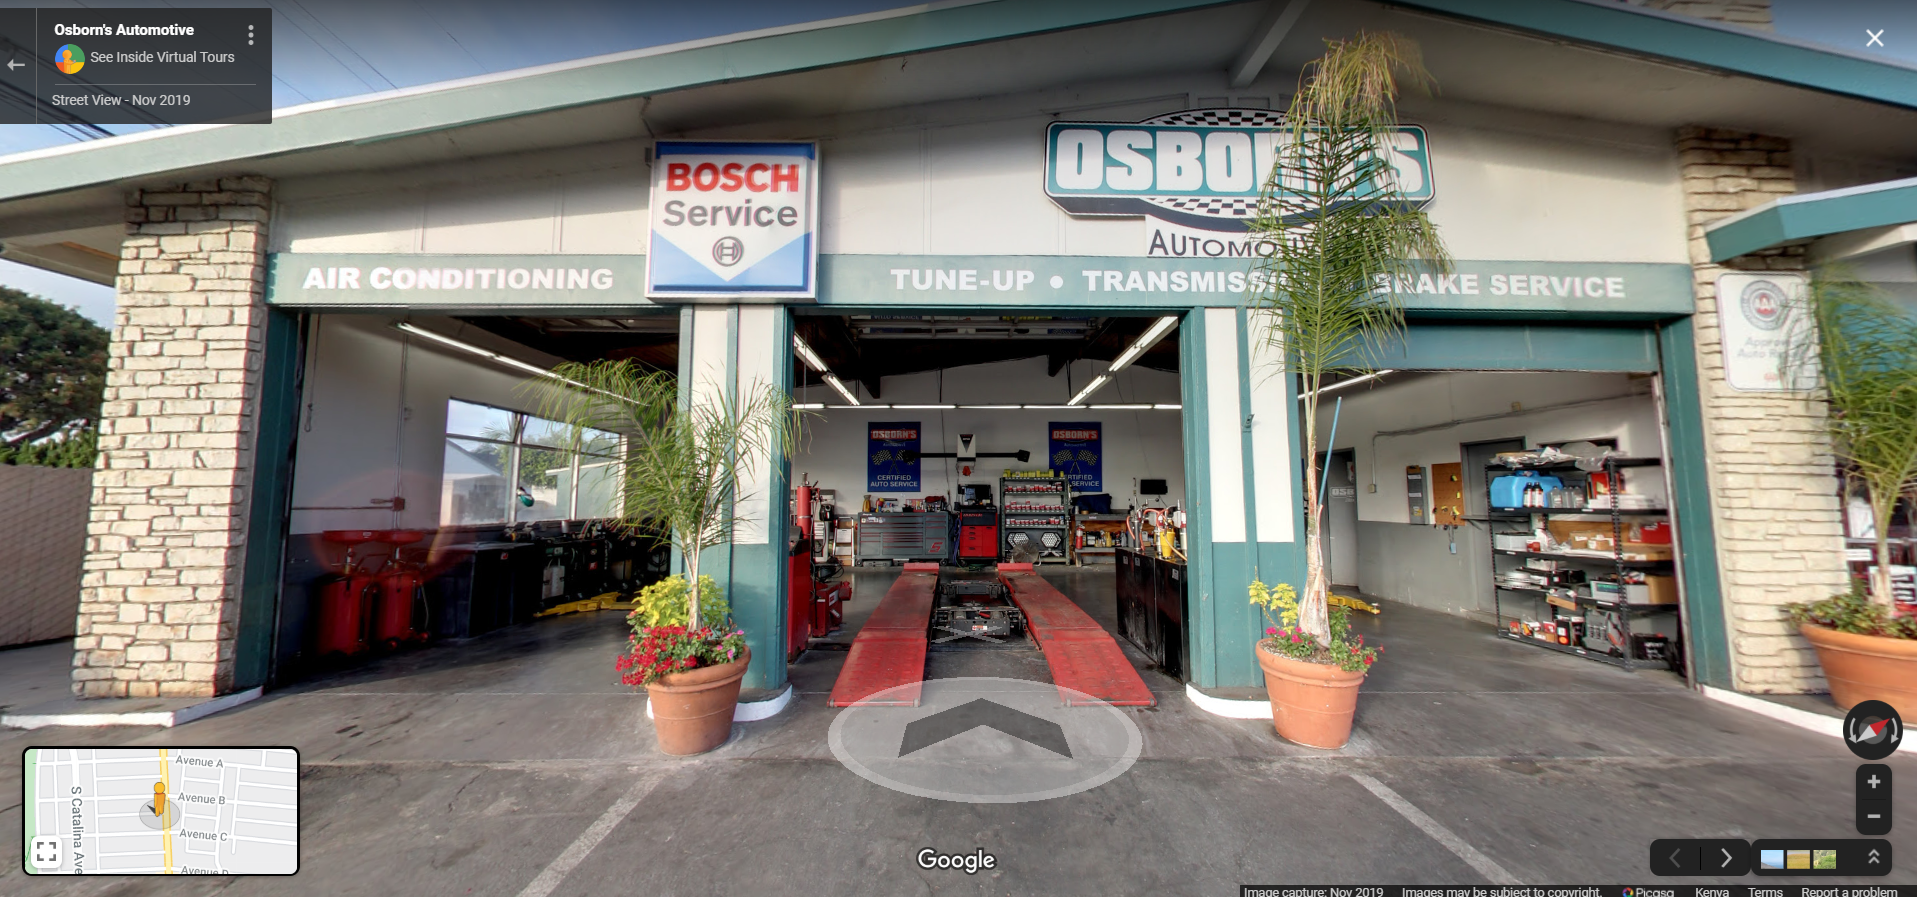 Osborn's Automotive - Redondo Beach